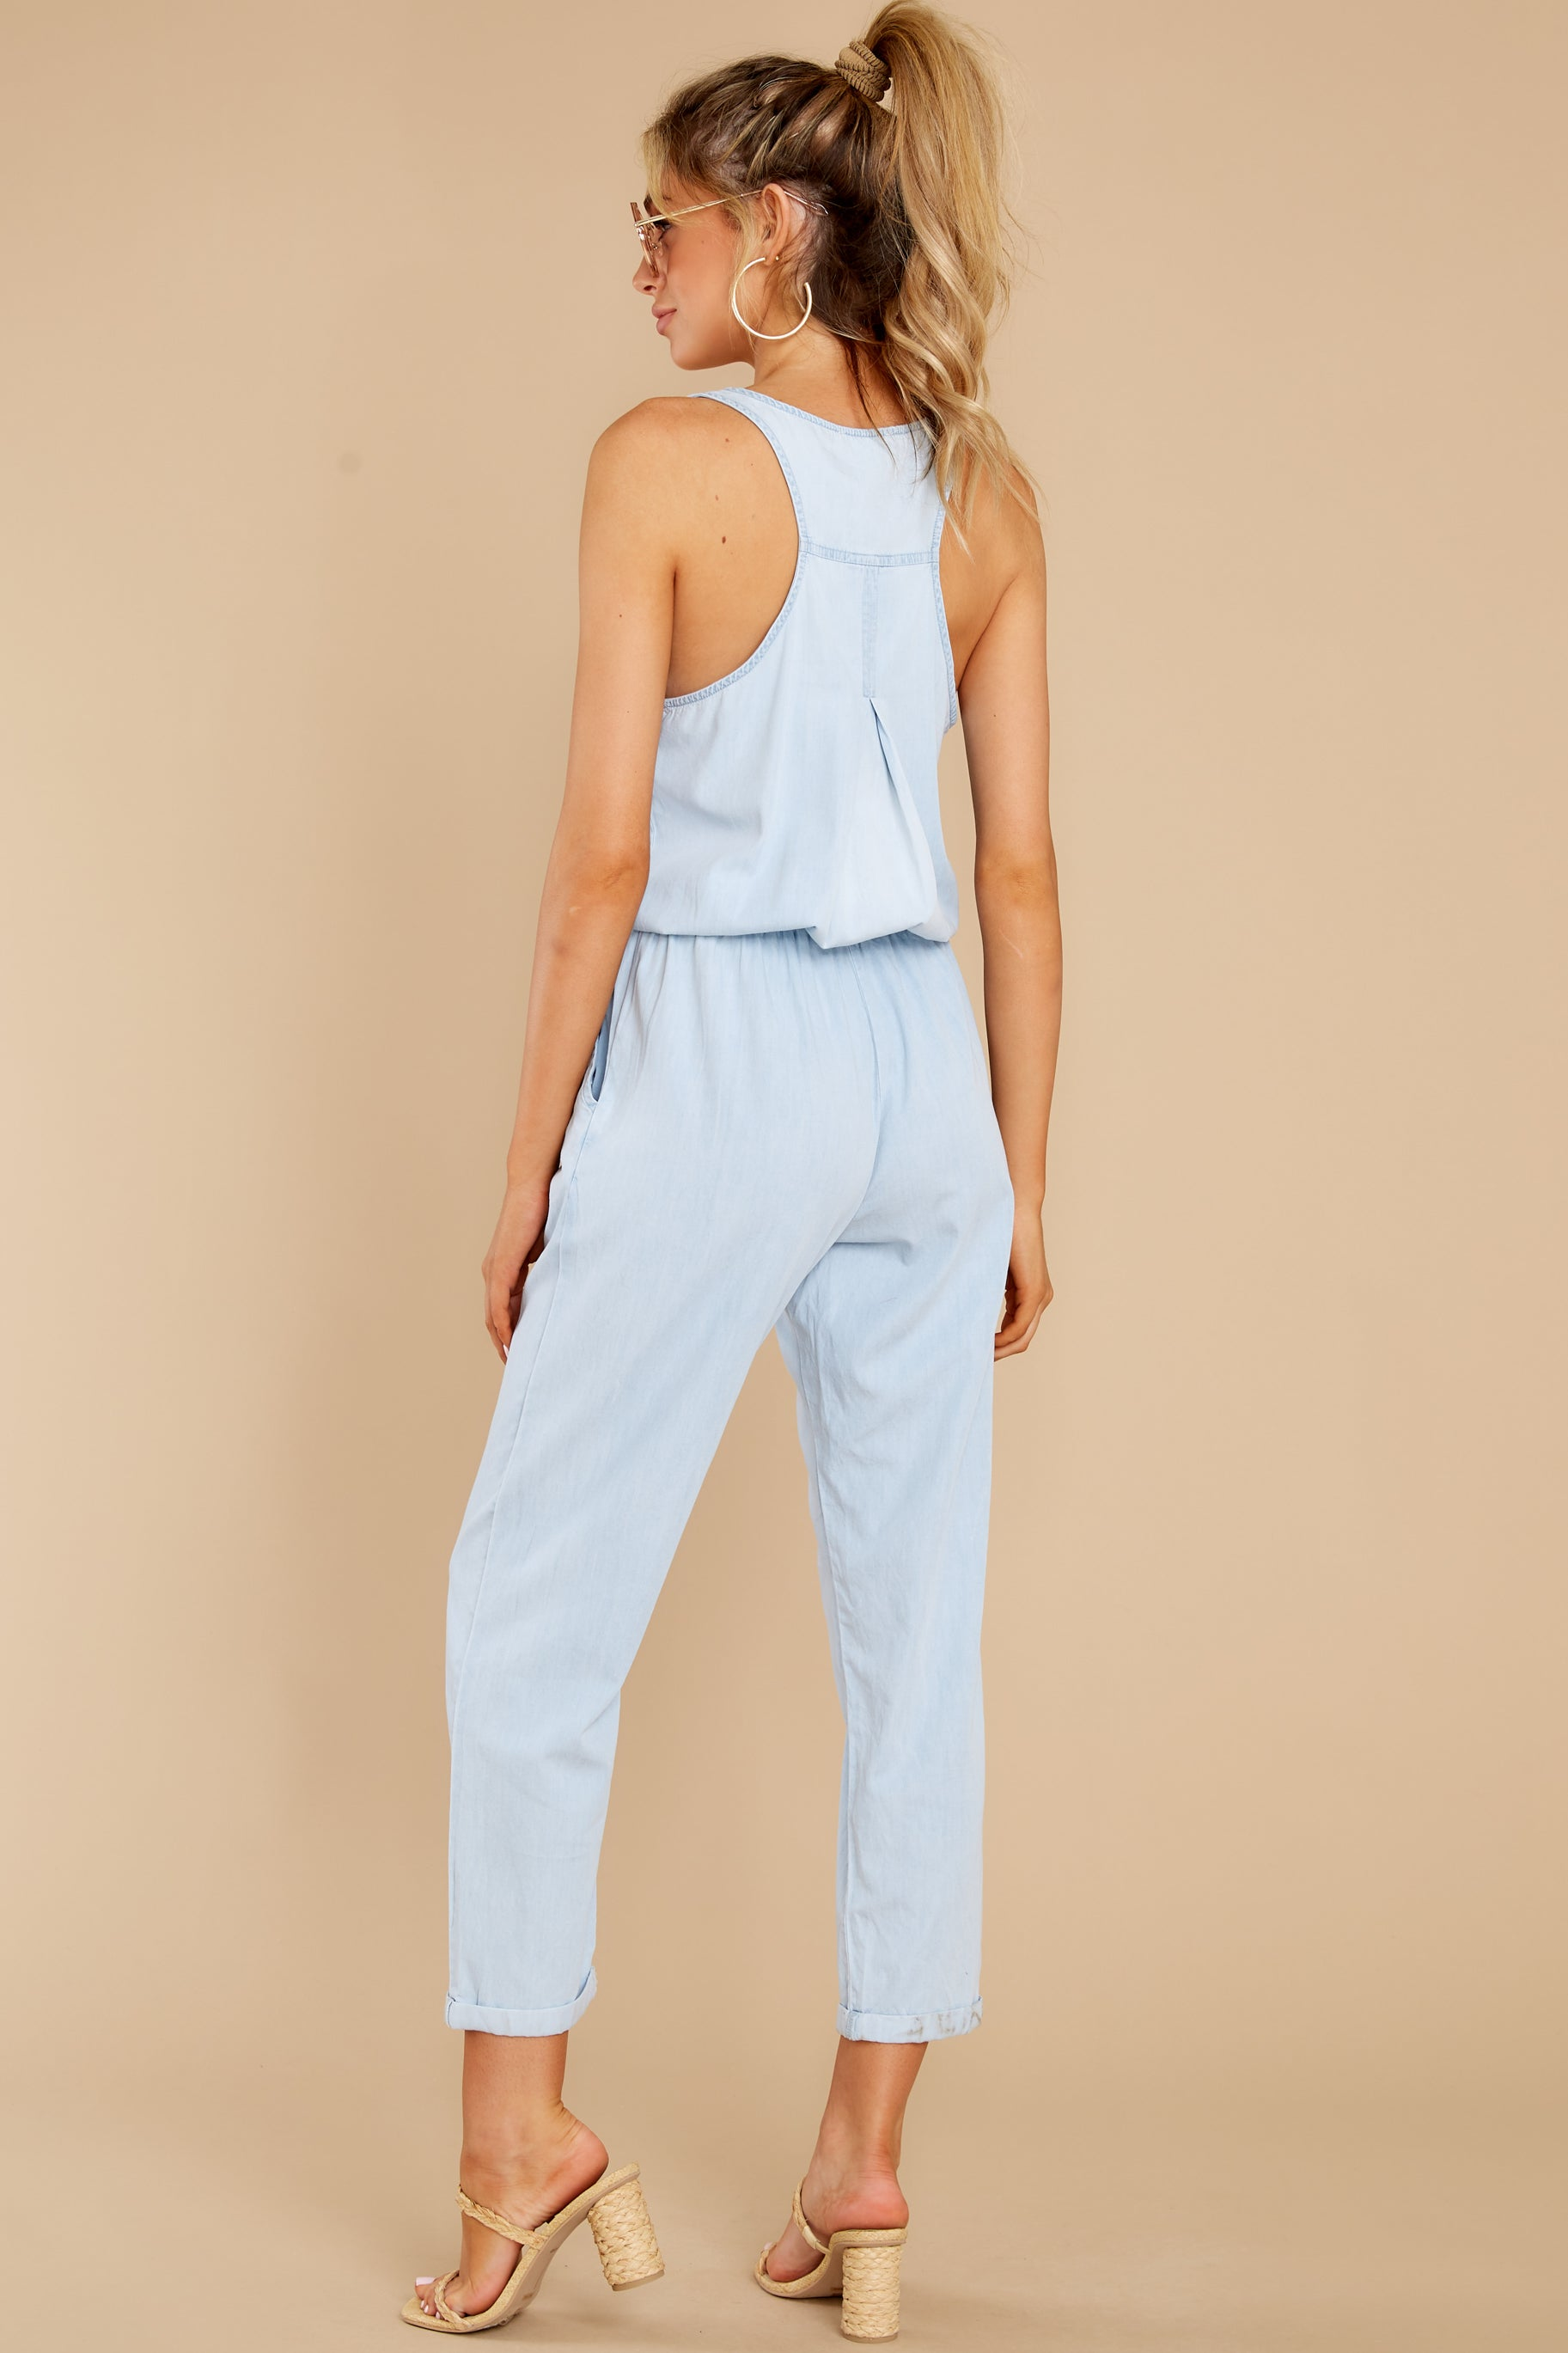 7 Play It Back Light Wash Chambray Jumpsuit at reddress.com